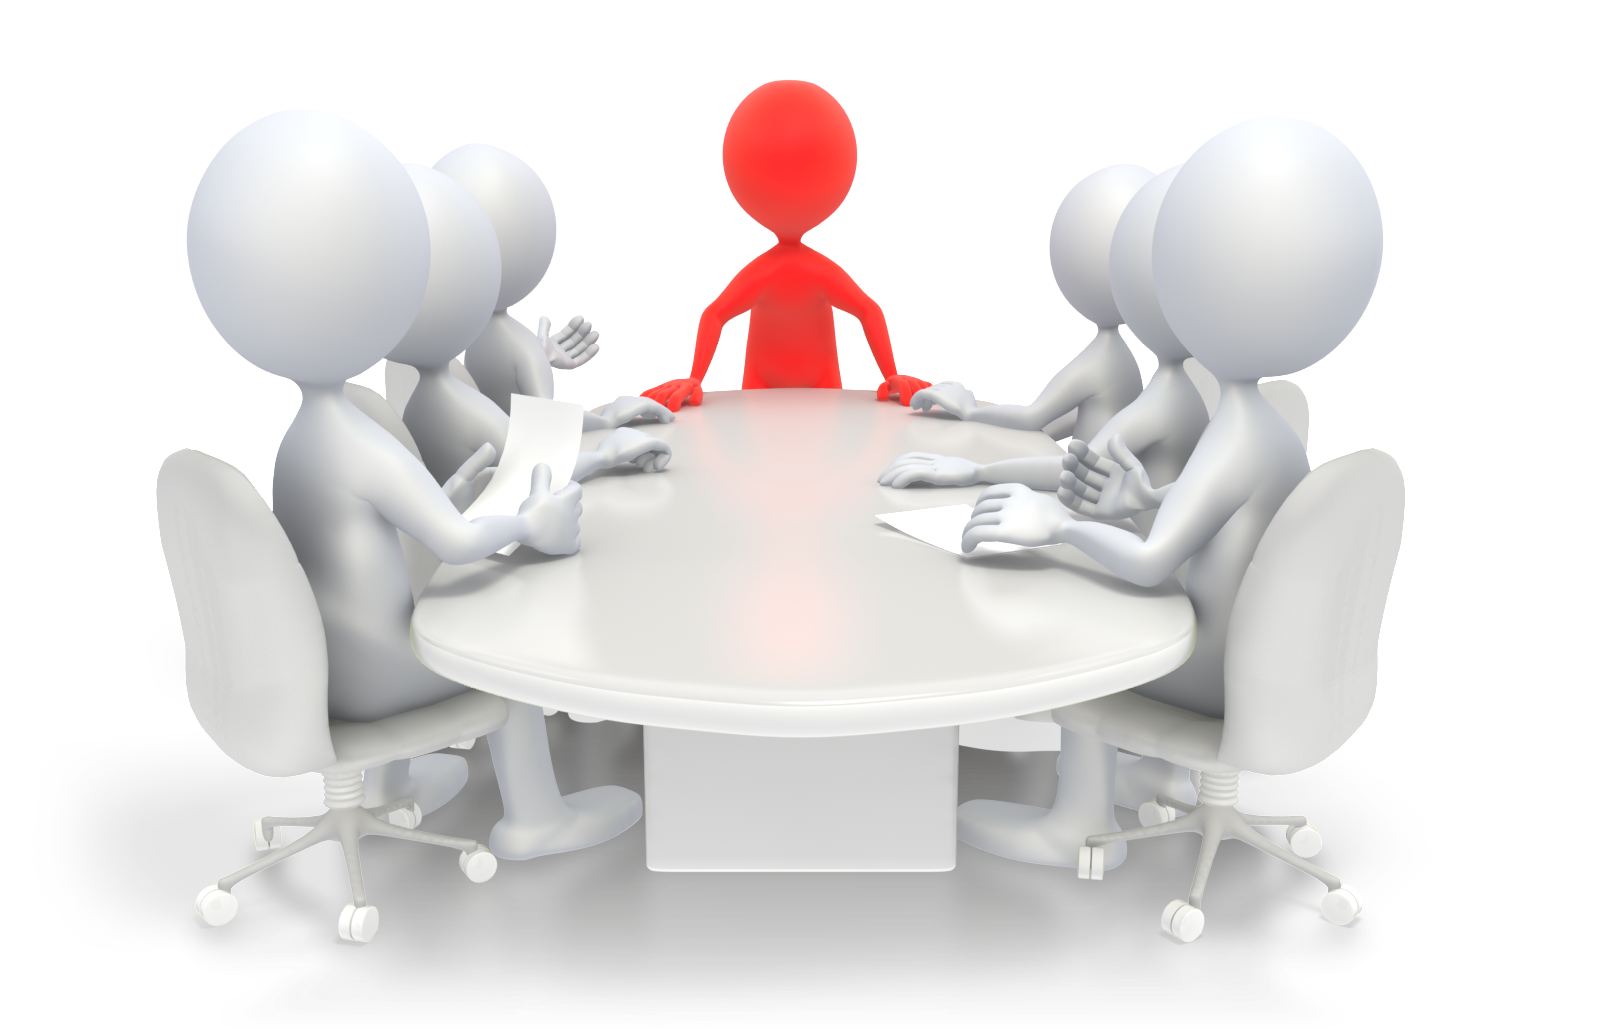 A discussion of the process of leadership in a group